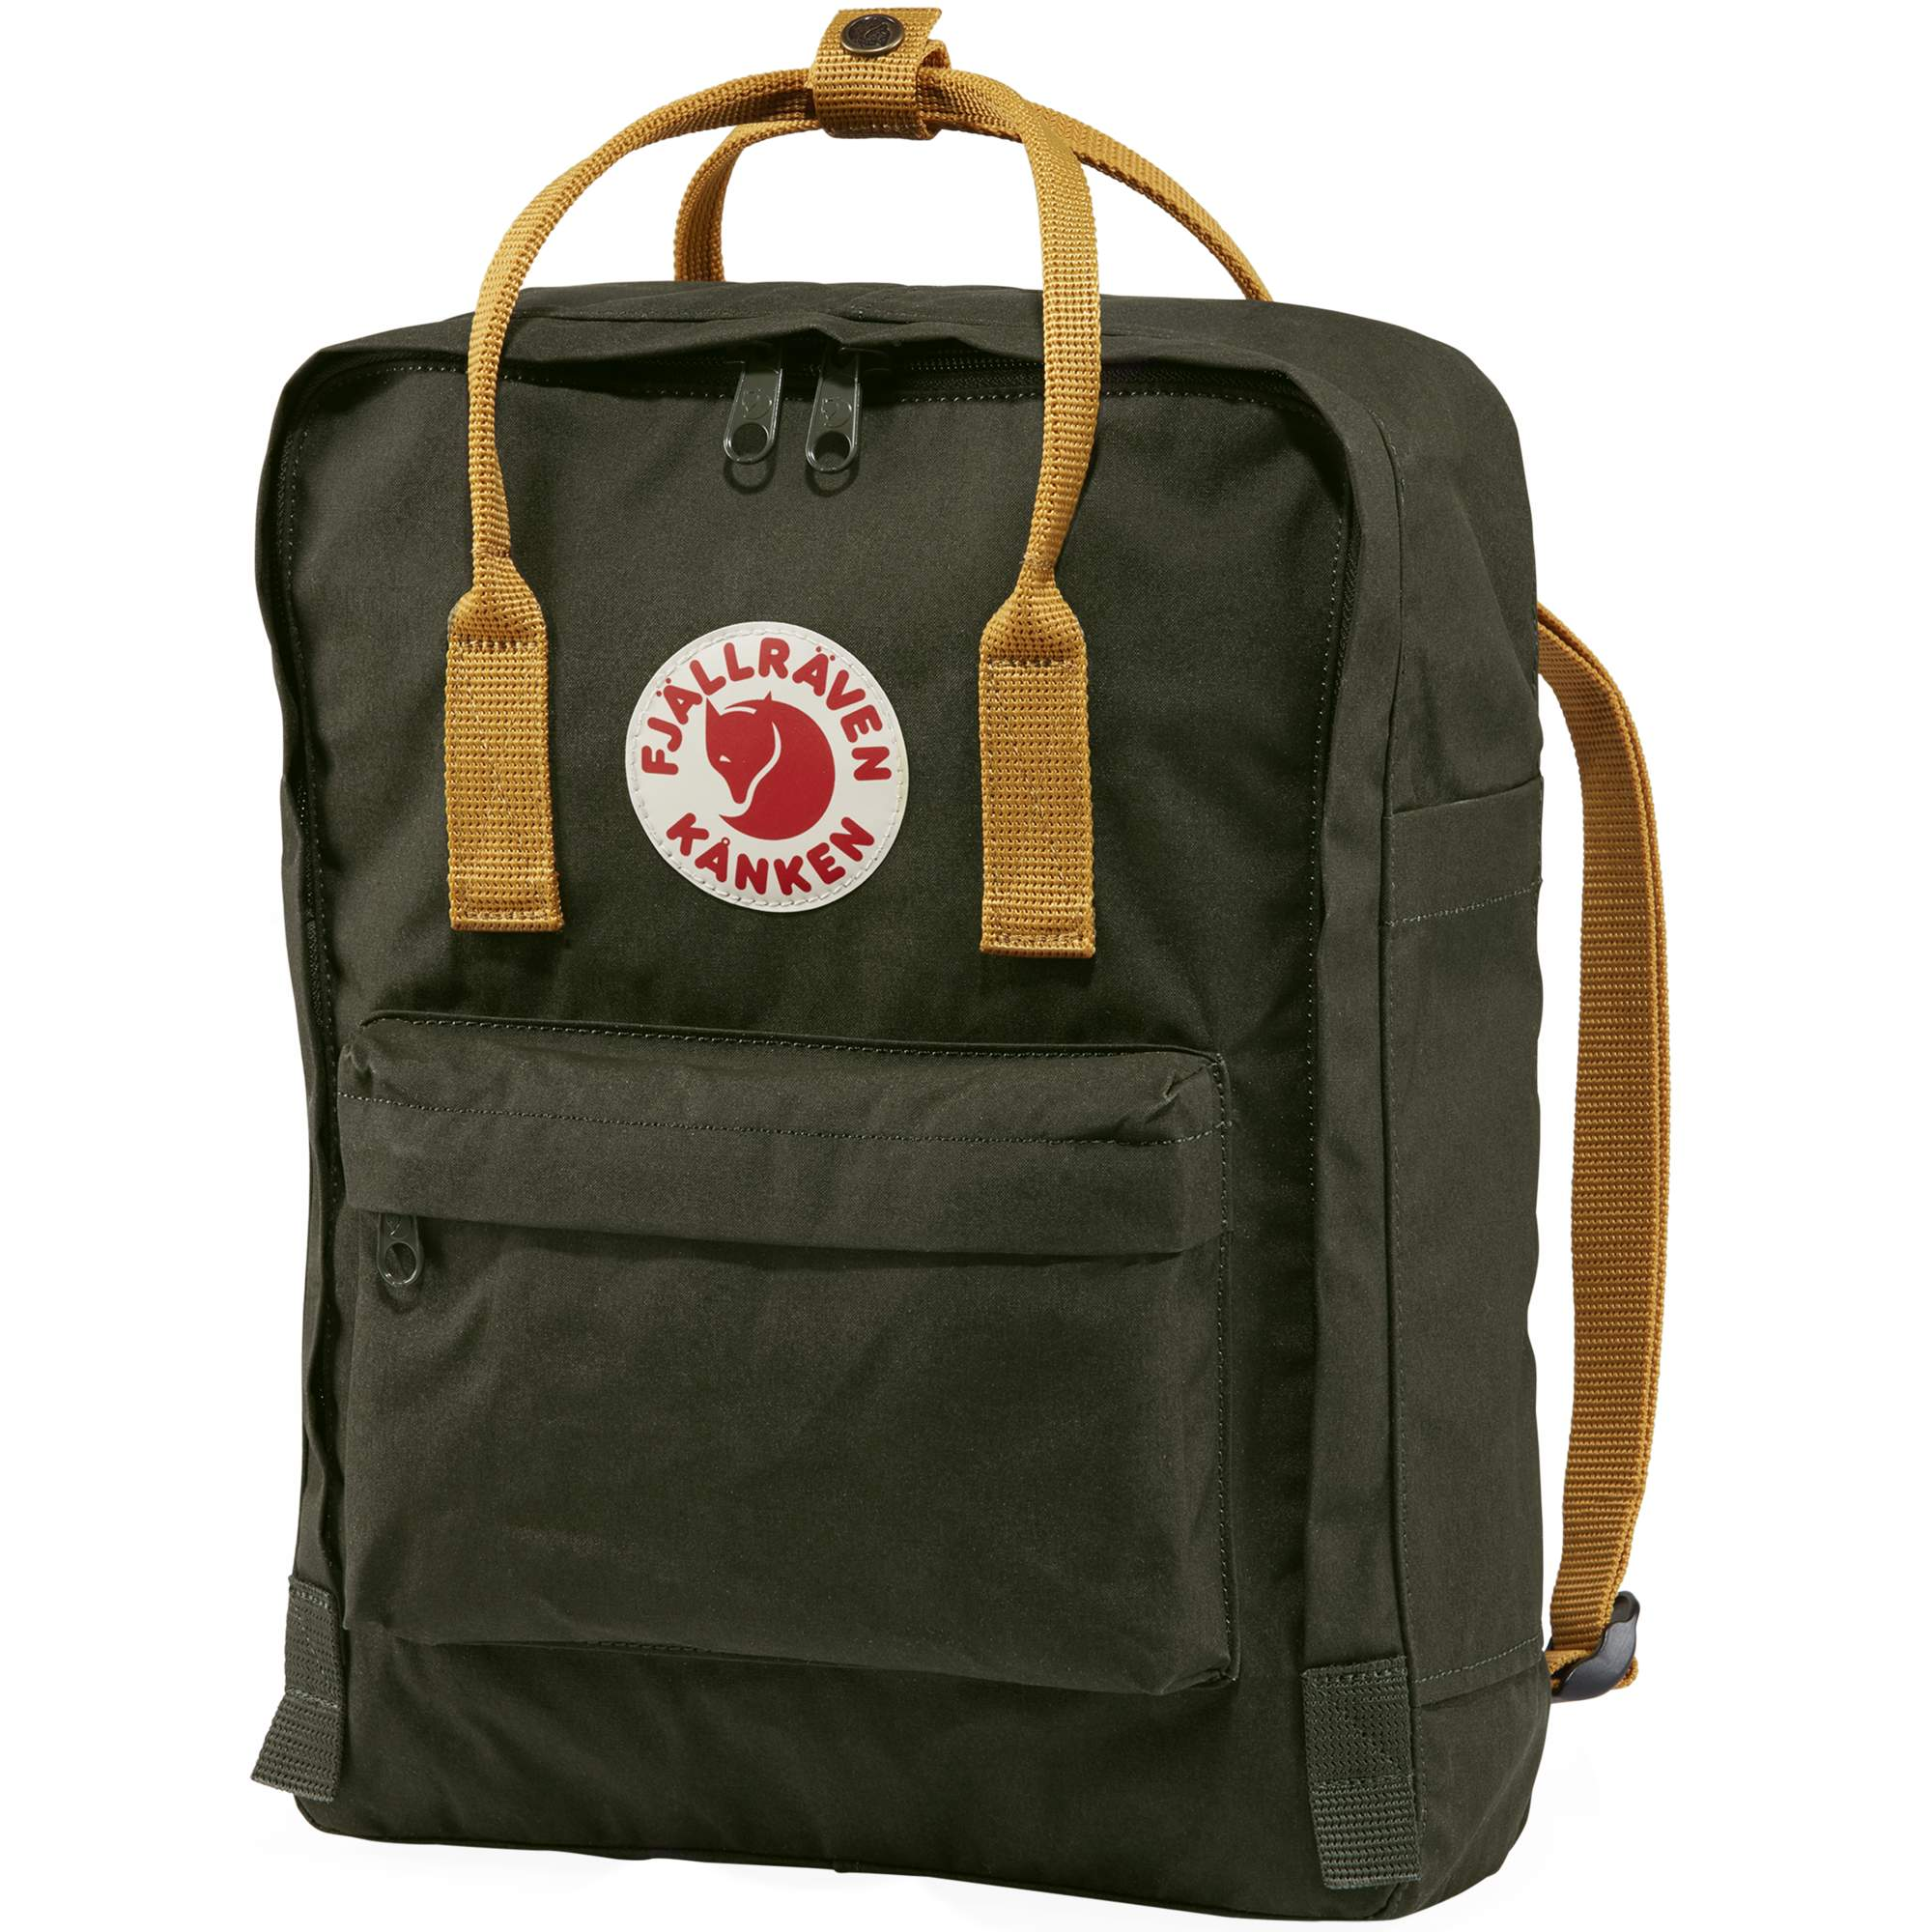 Kanken Bag - Deep Forest / Acorn